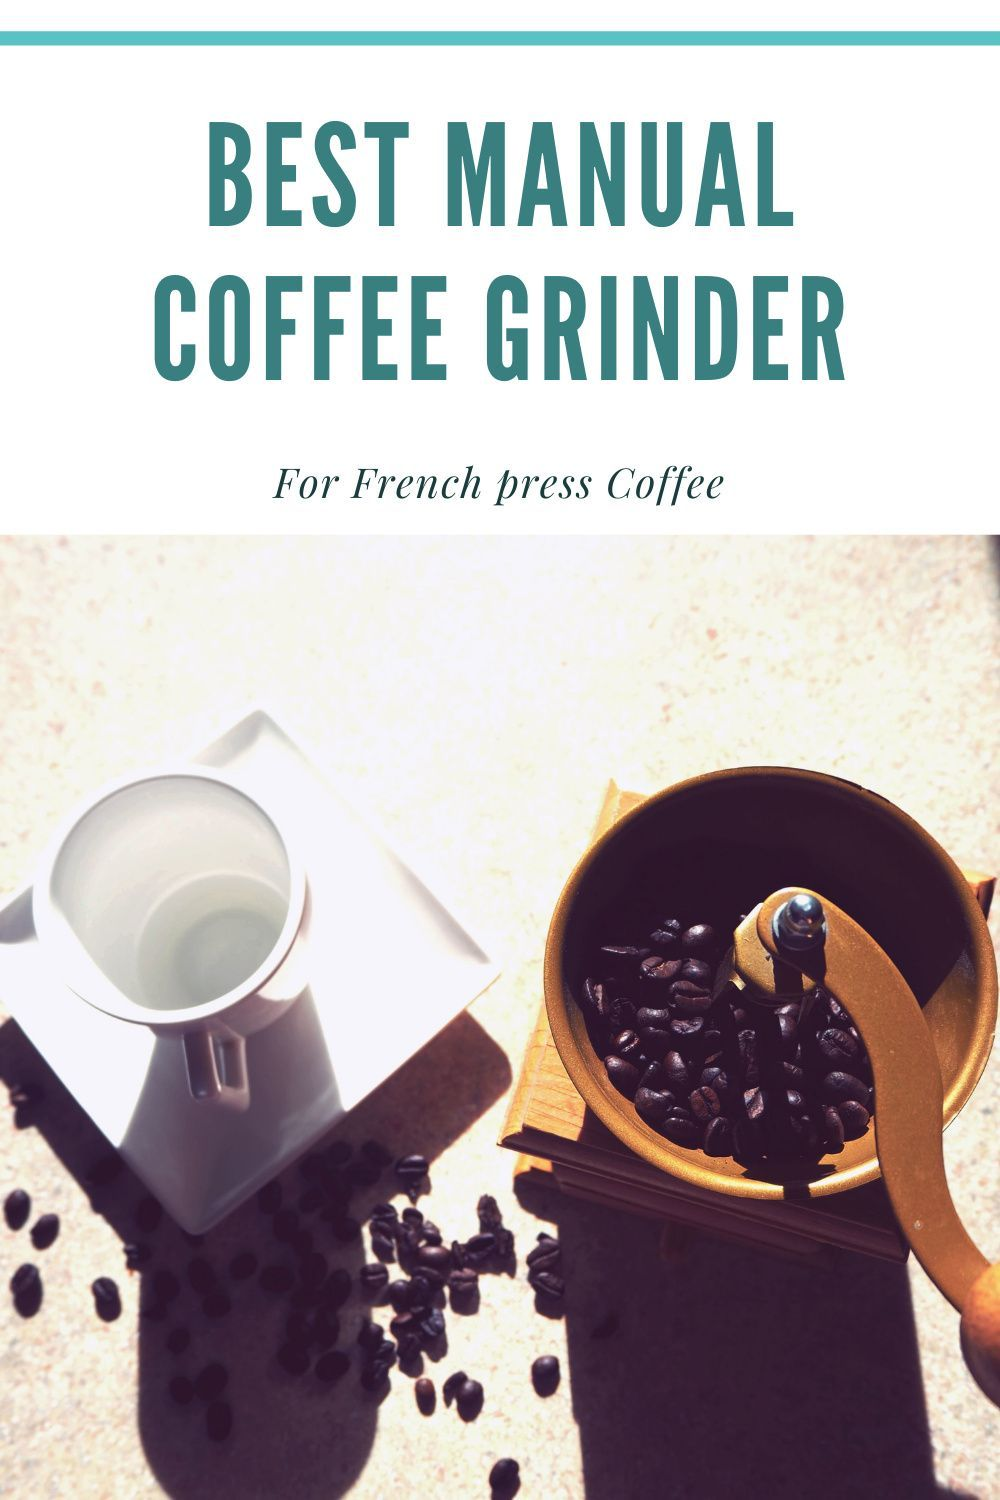 The Best Manual Coffee Grinders For French press Coffee in